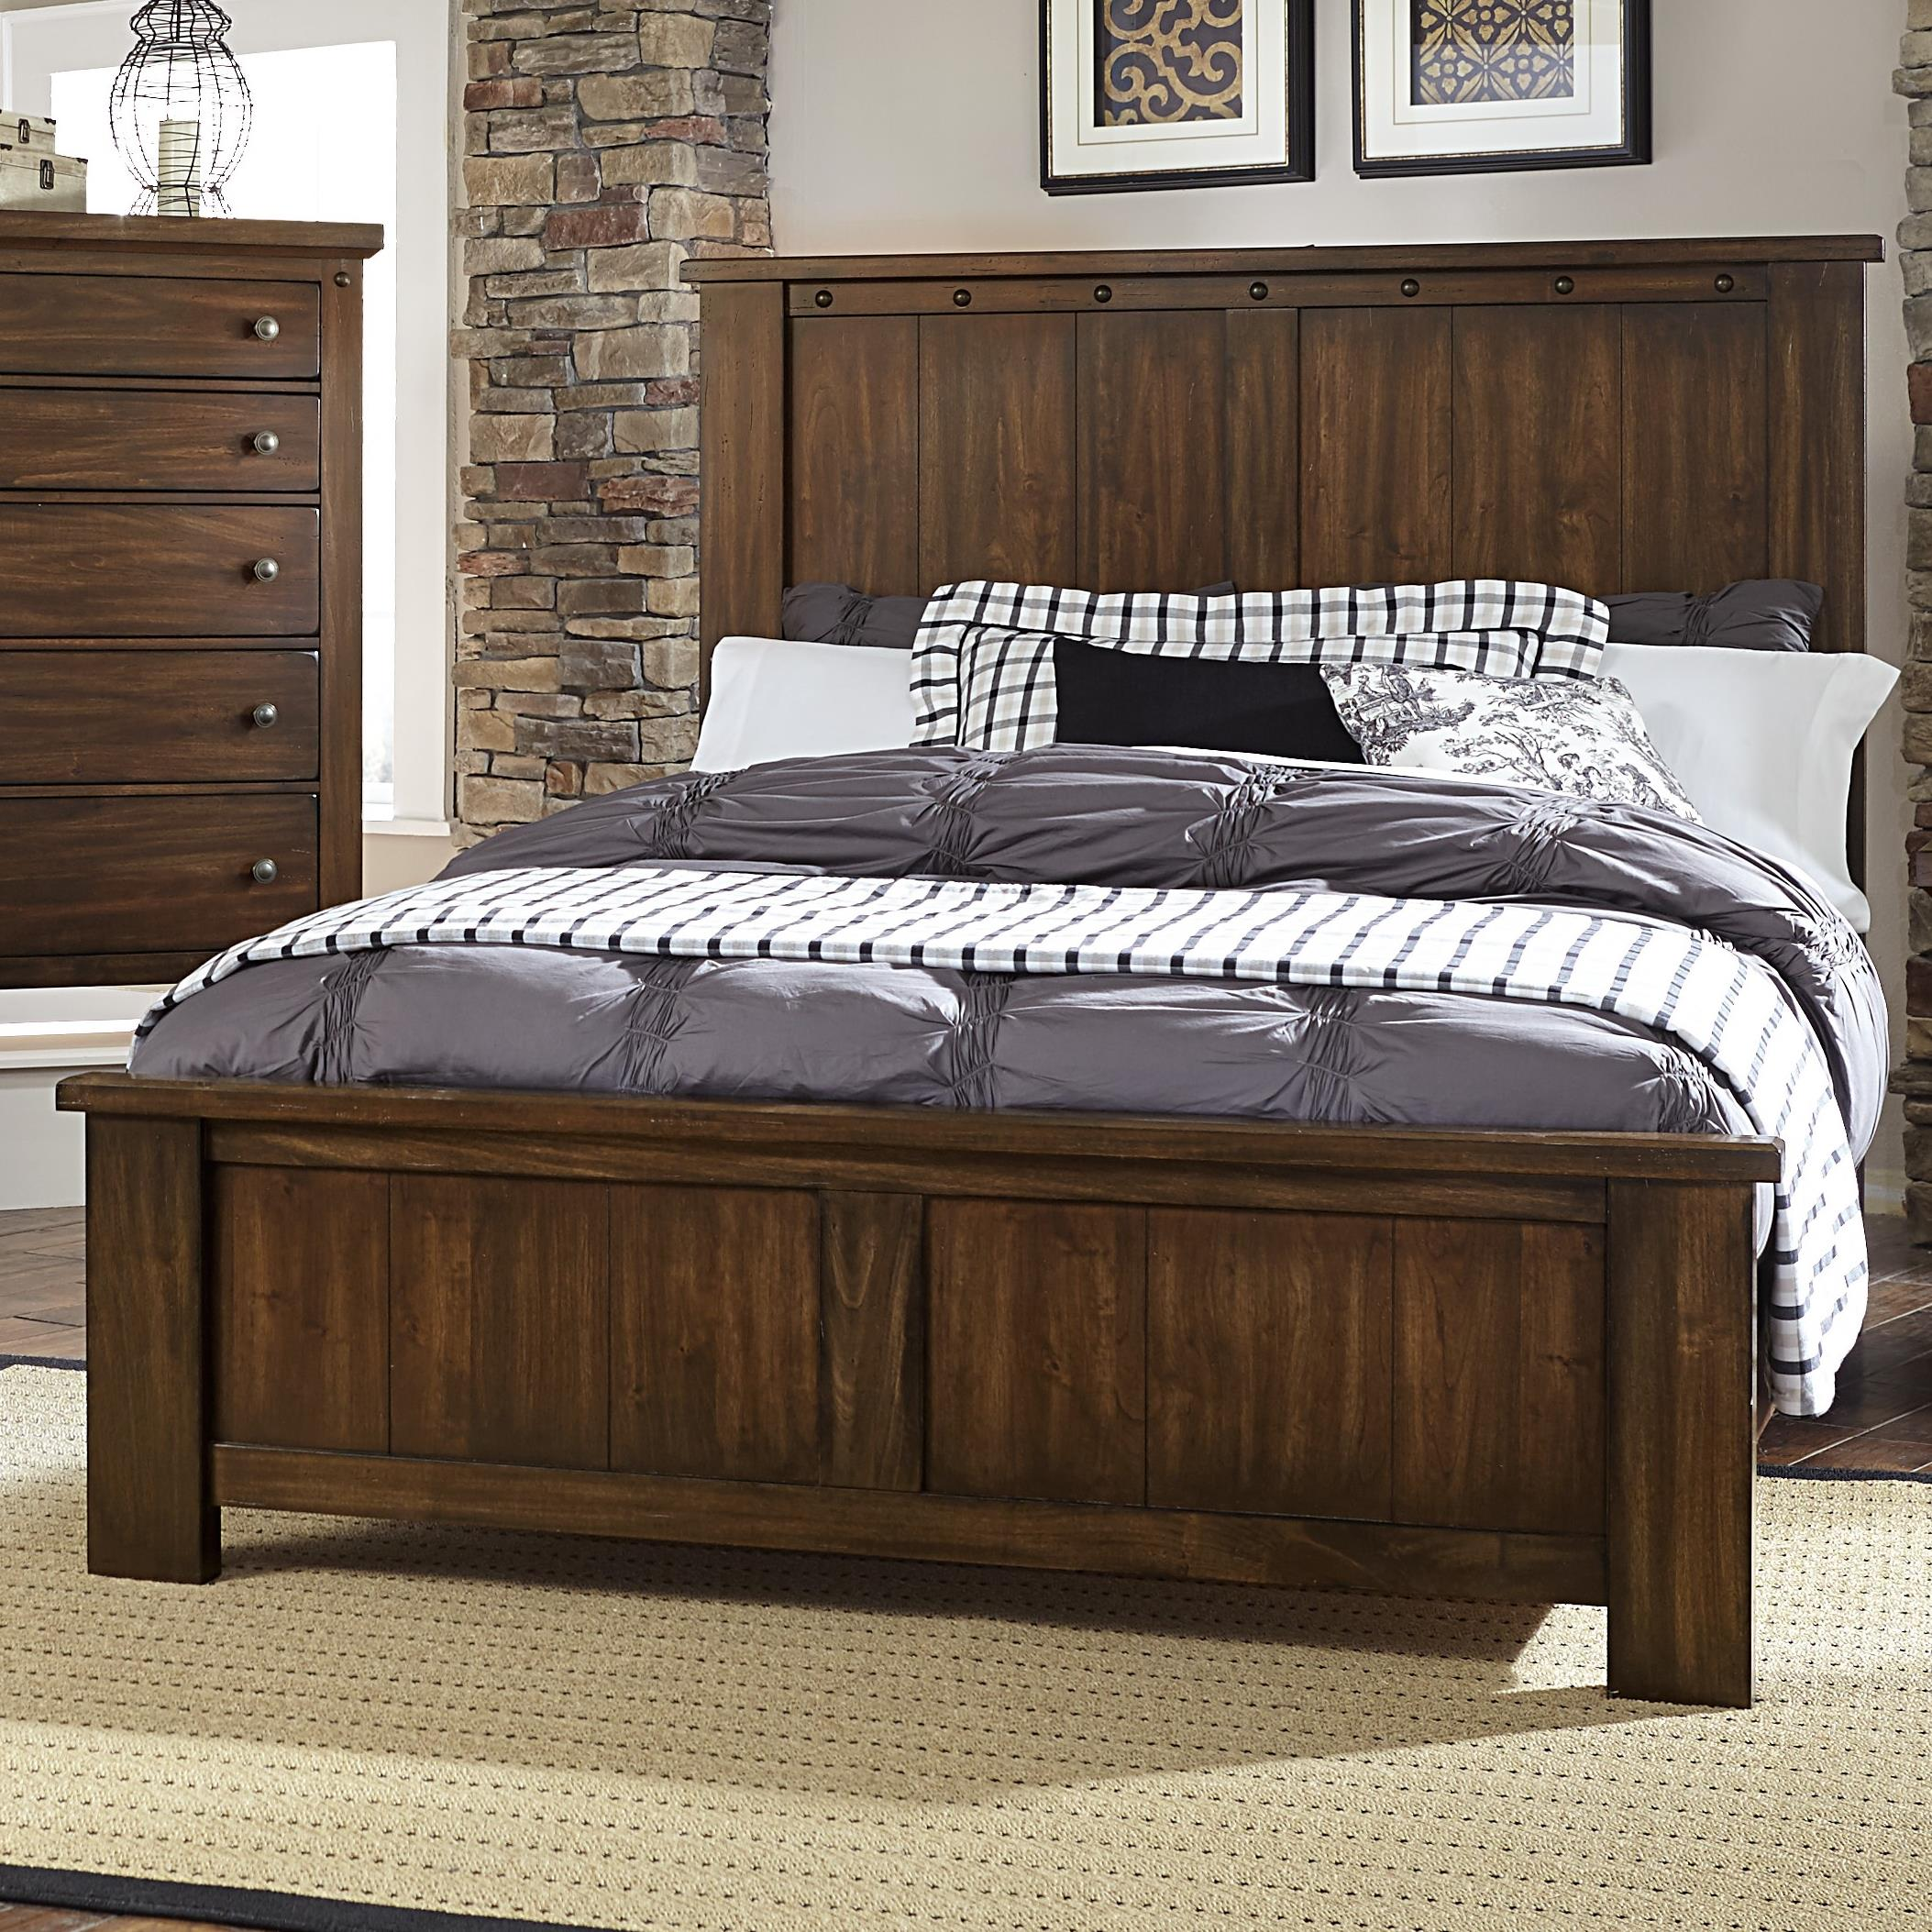 Vaughan Bassett Collaboration King Panel Bed - Item Number: 612-668+866+922+MS2